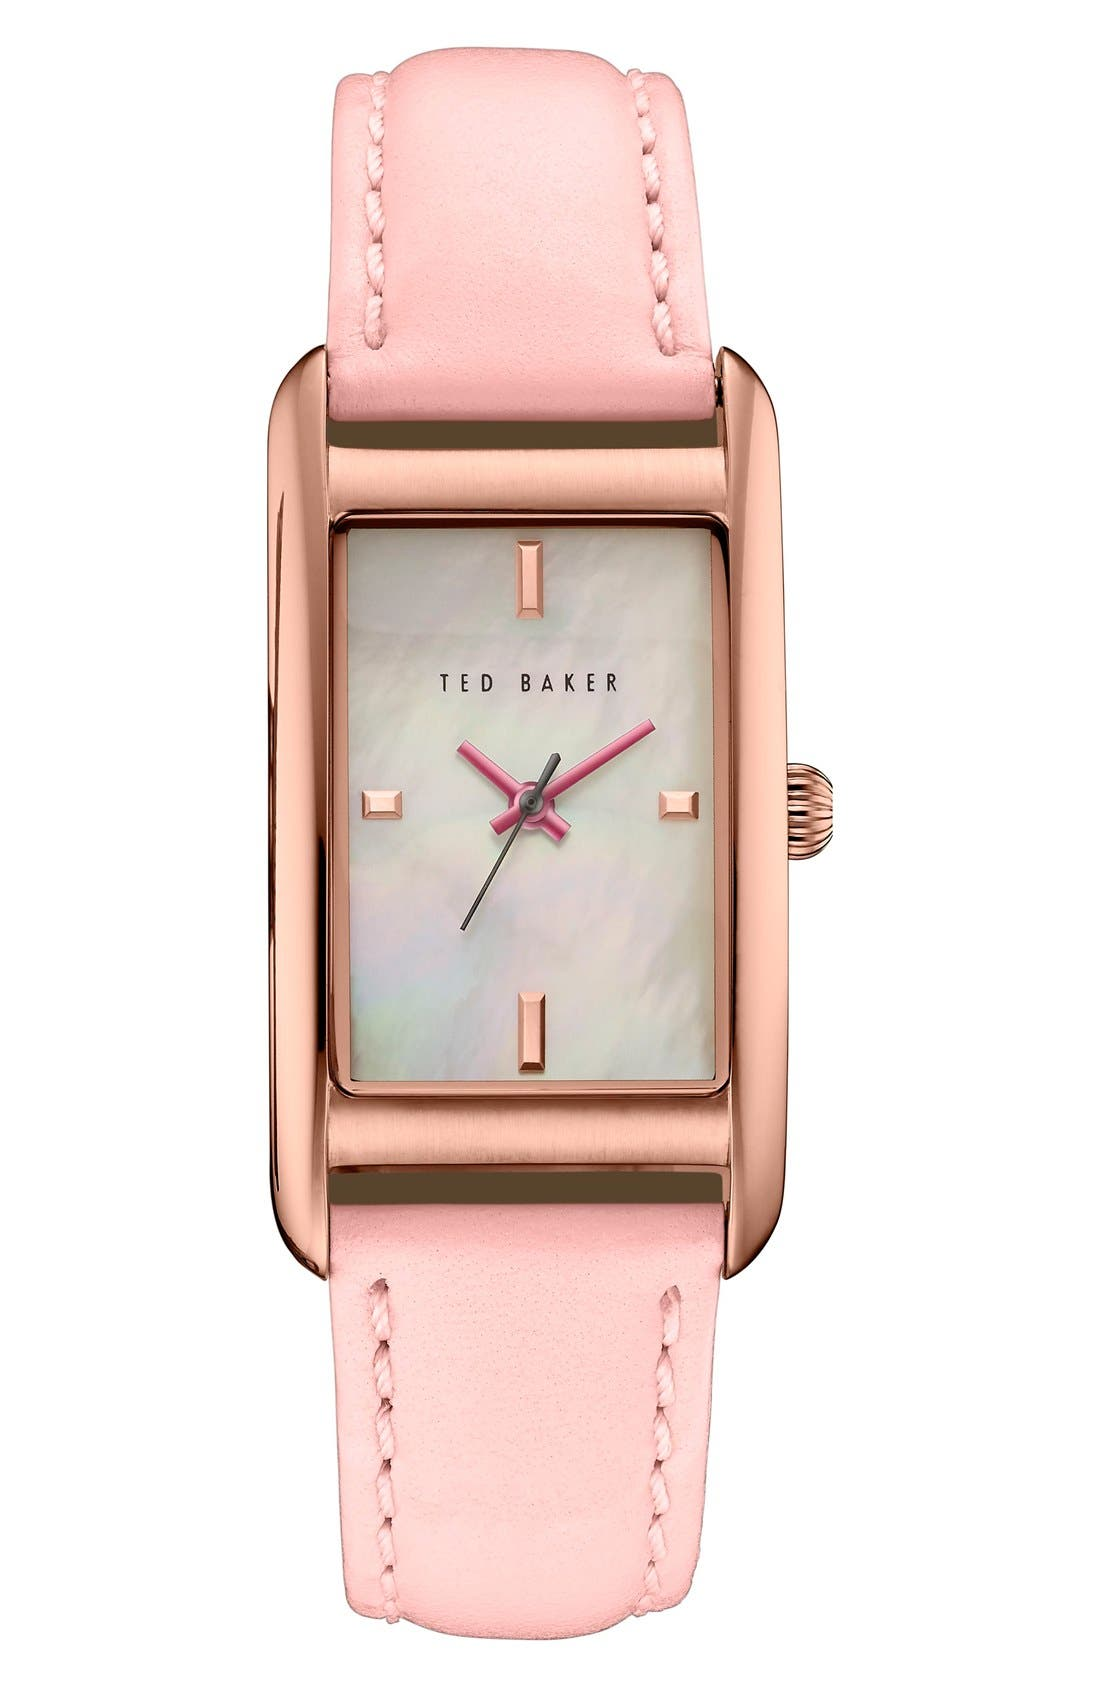 TED BAKER LONDON Bliss Rectangle Case Leather Strap Watch, 24mm x 45mm